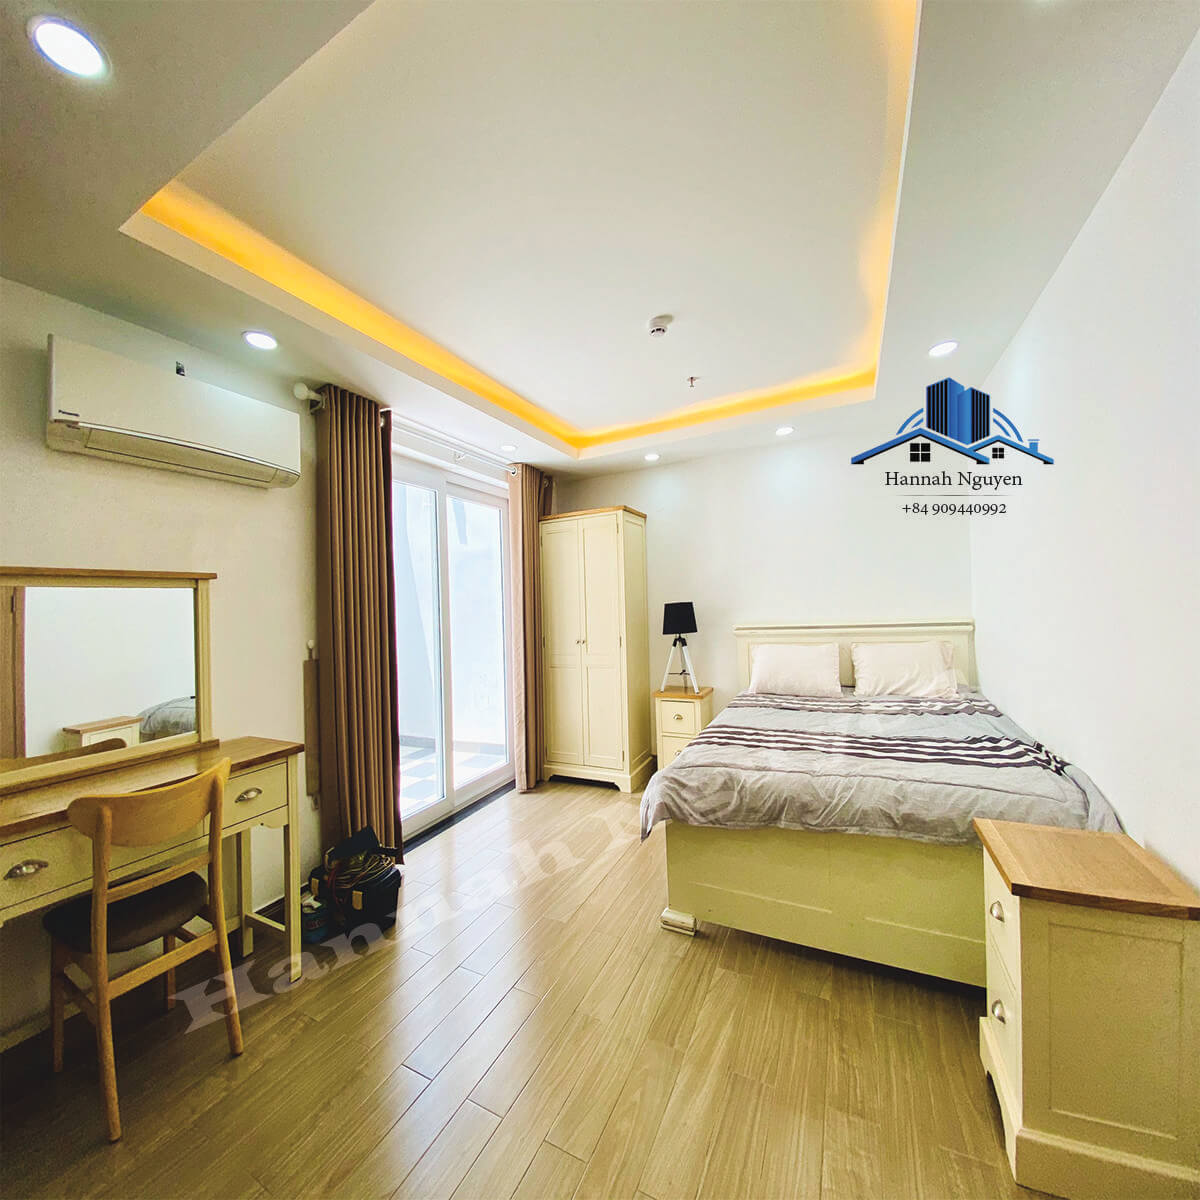 Private Yard, Nice Studio Serviced Apartment For Rent near Xuan Thuy street, Thao Dien, D2